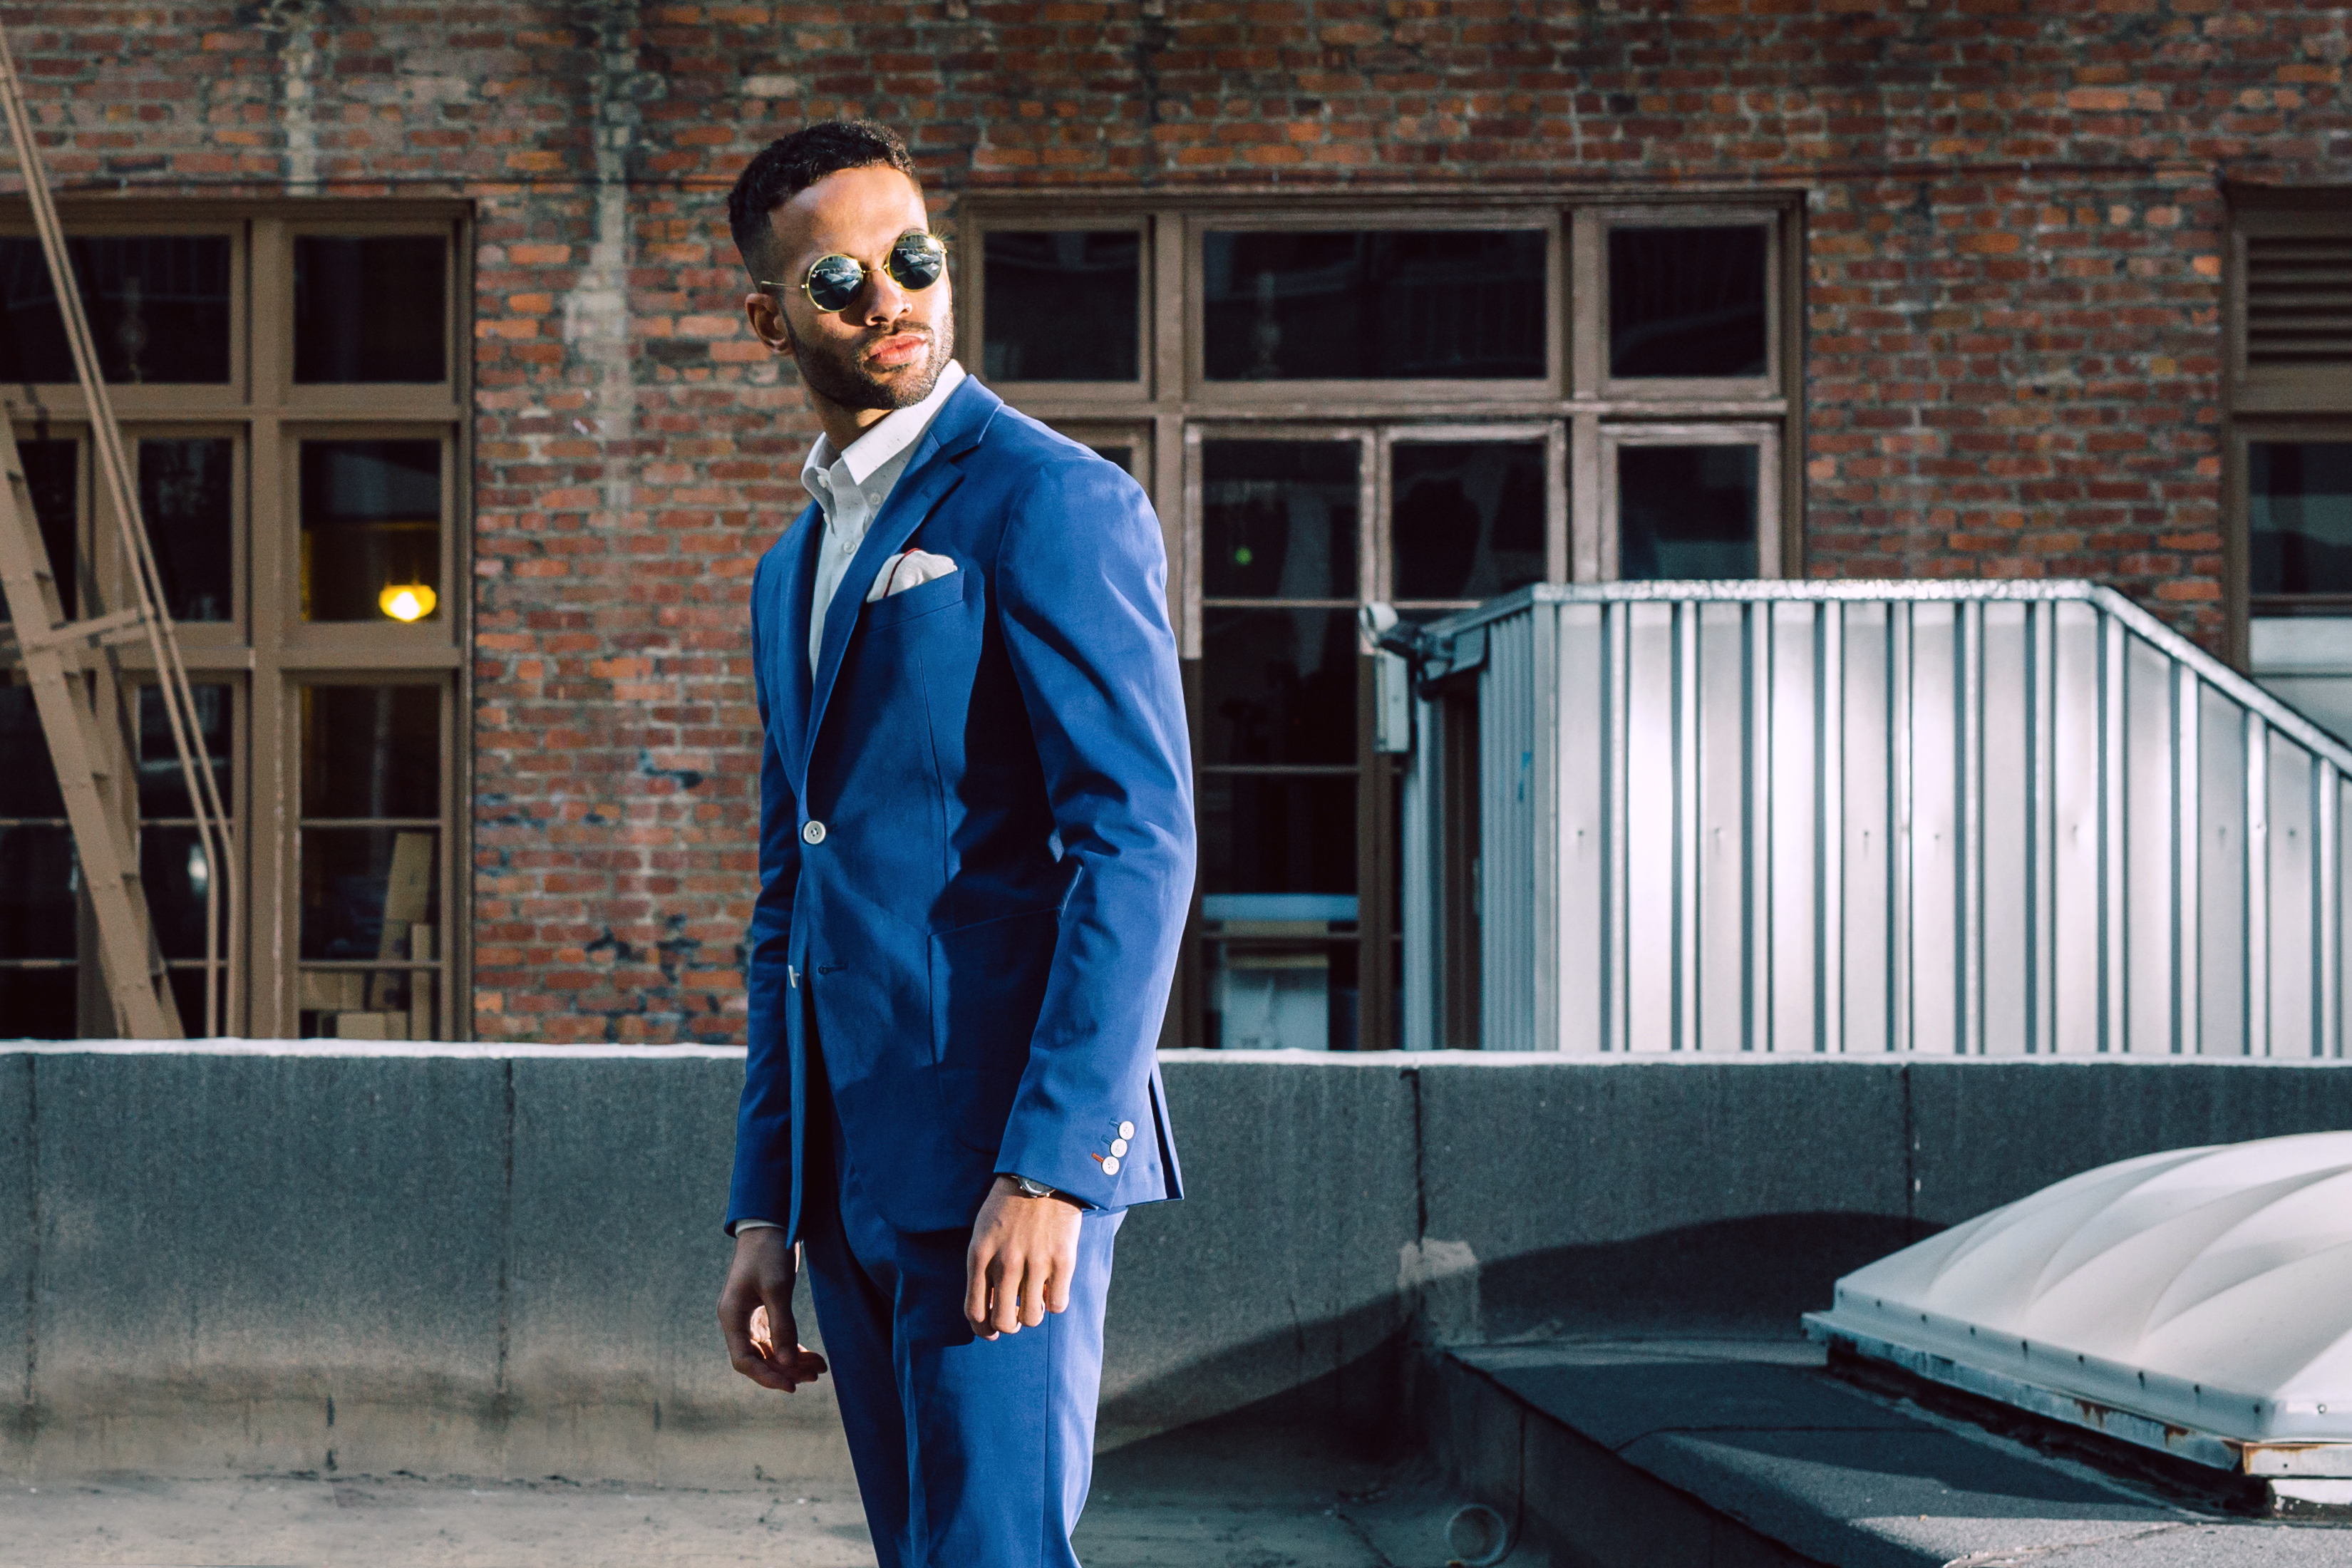 This Menswear Startup Will Recommend Clothes Based on Your Spotify Data